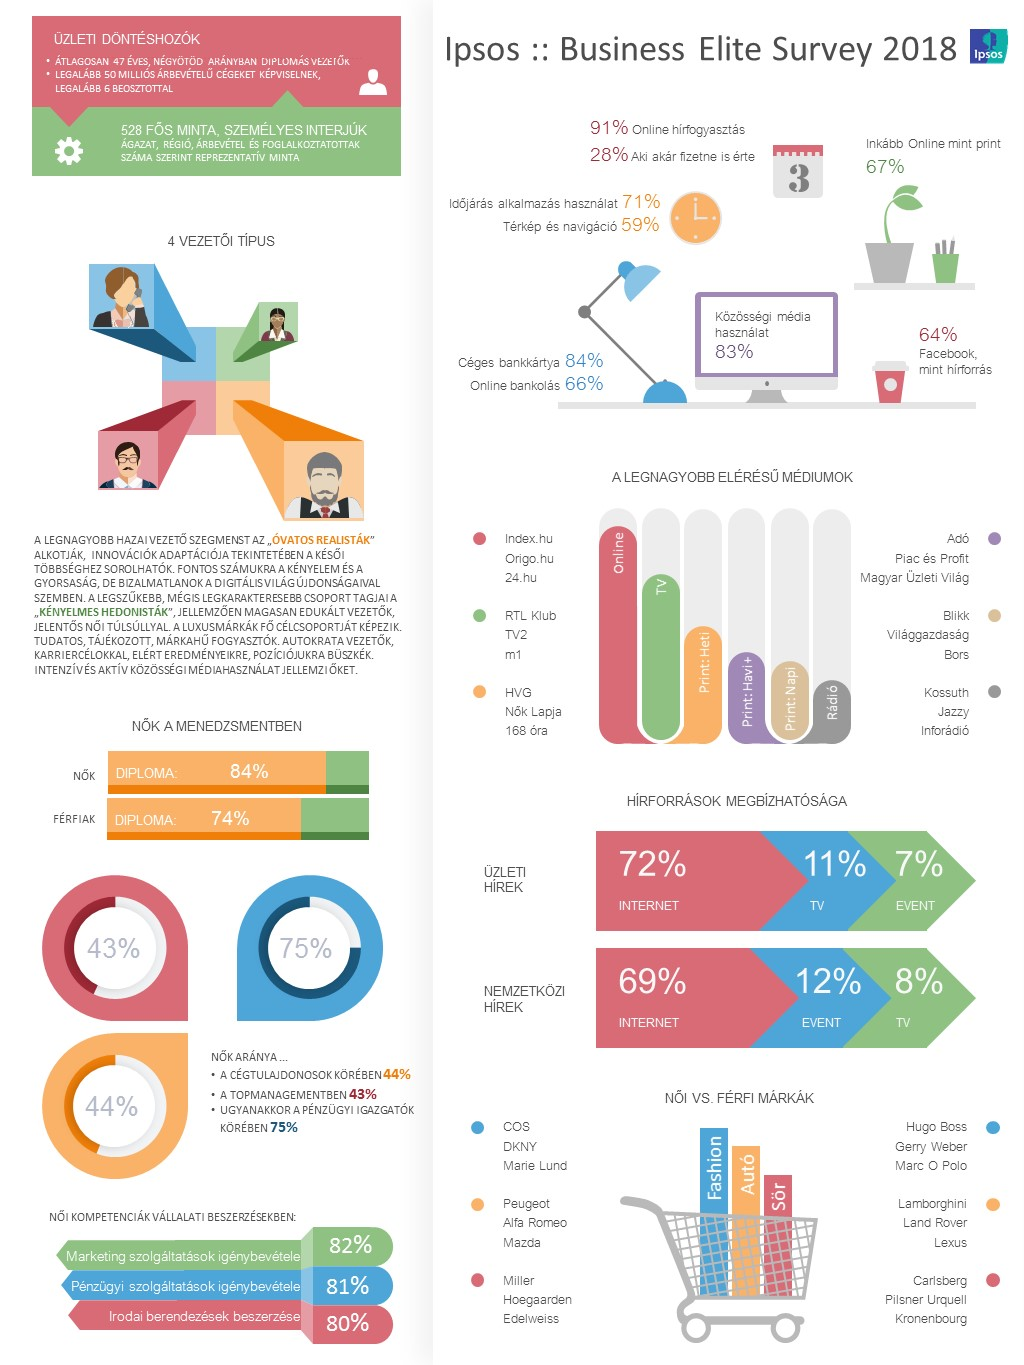 Ipsos BES 2018 one-pager